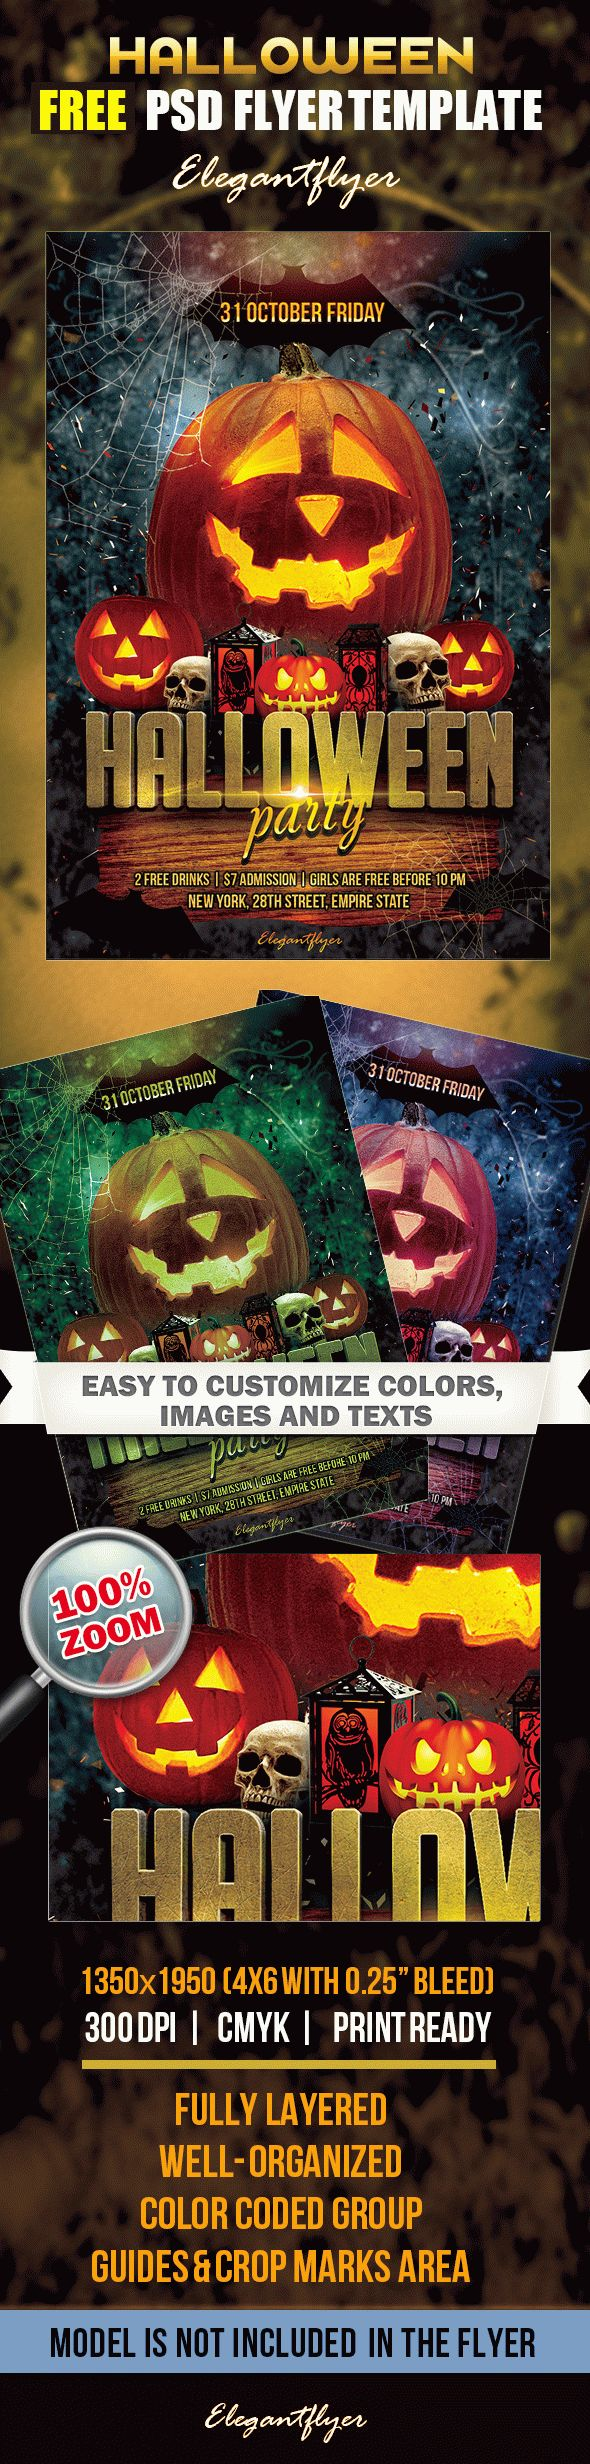 Halloween Party Free Flyer Psd Template By Elegantflyer